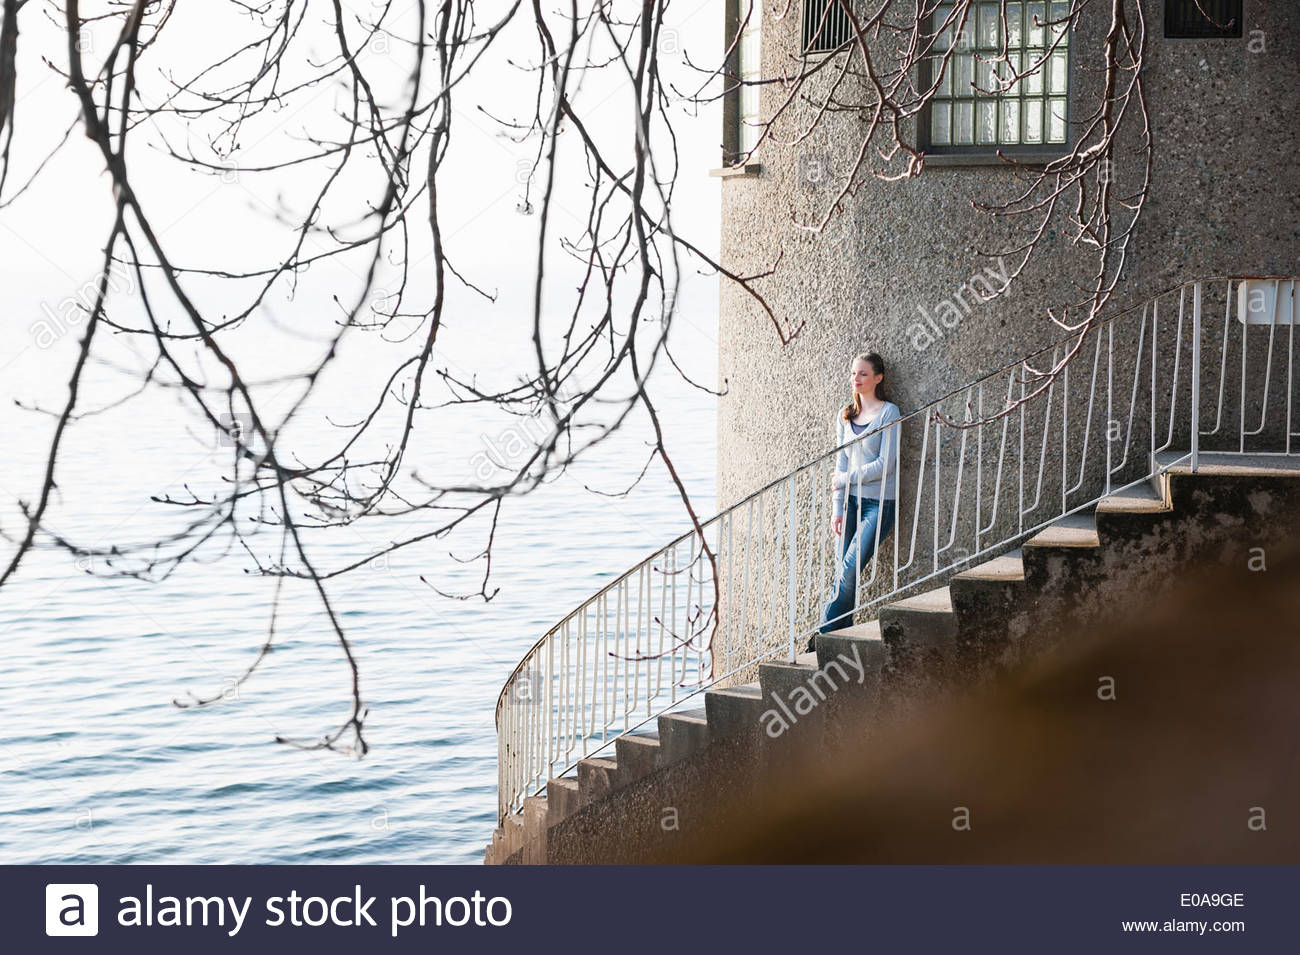 Young woman standing on spiral stairs, Lake Constance, Lindau, Bavaria, Germany - Stock Image